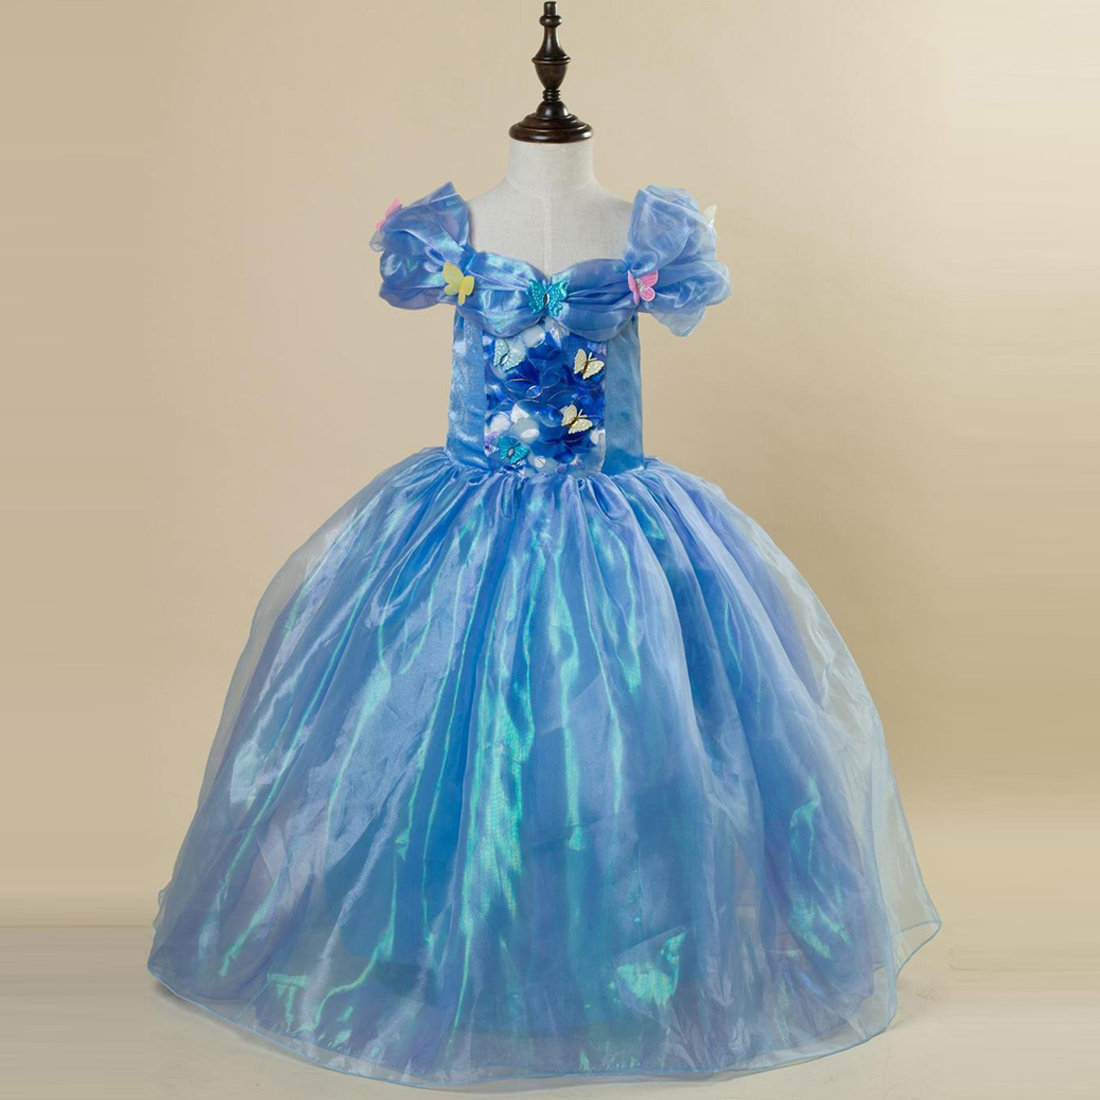 Princess Cinderella Wedding Dress Costume For: Summer Baby Girls Dresses 2016 Princess Cinderella Dress